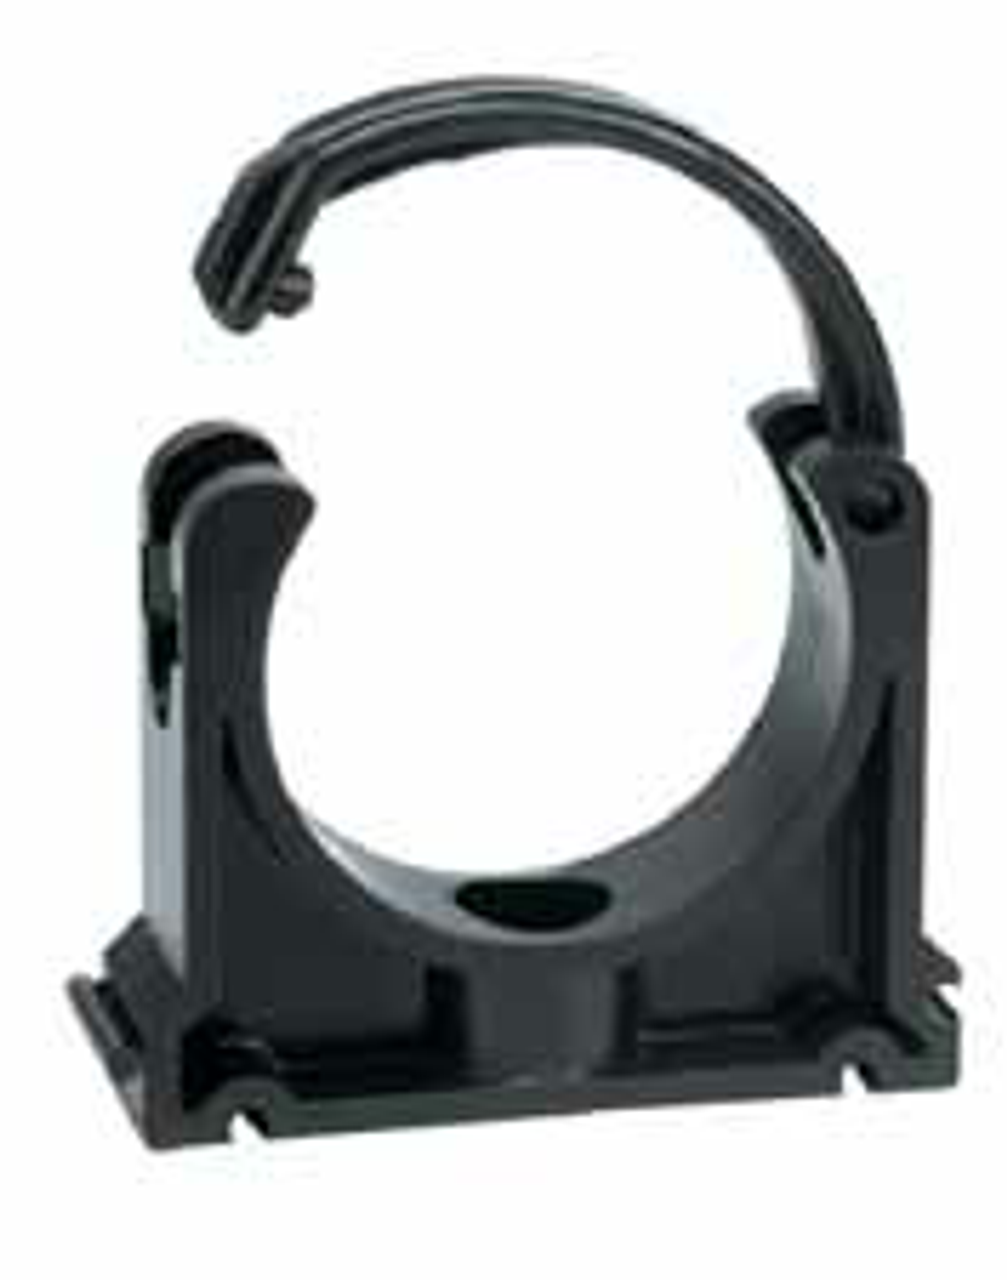 PVC Imperial Pipe Clamp Brackets